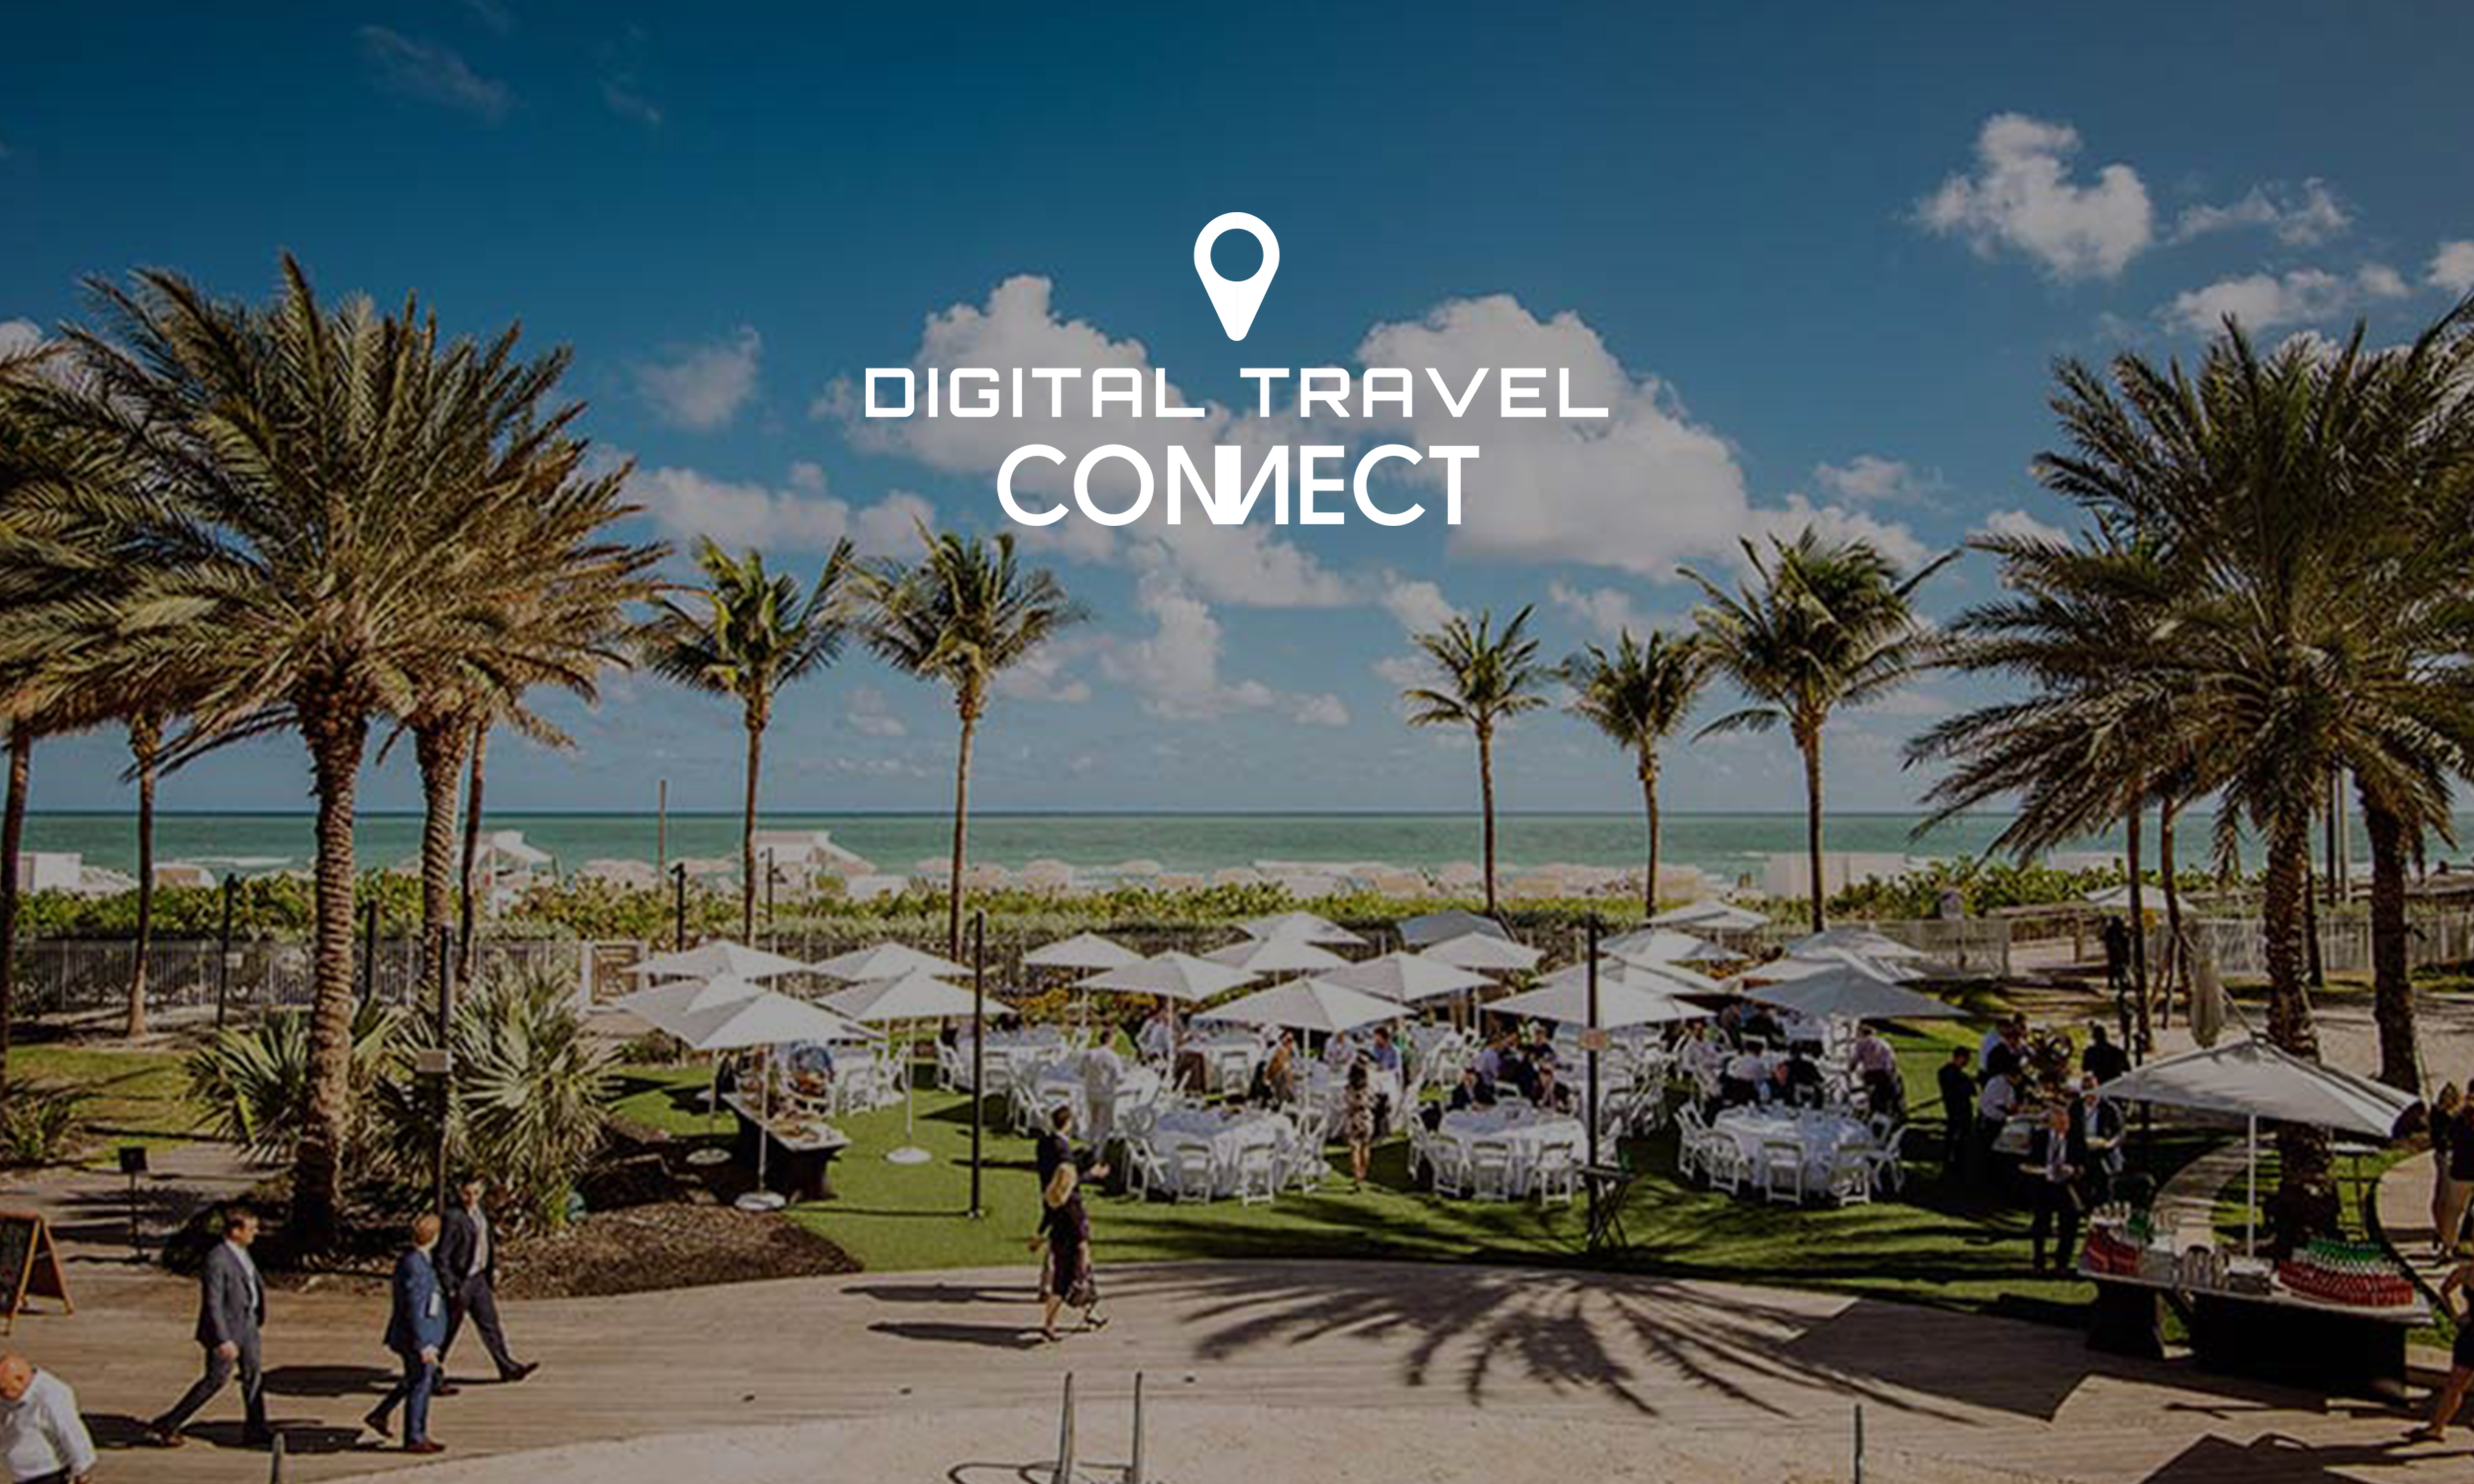 Digital Travel Connect